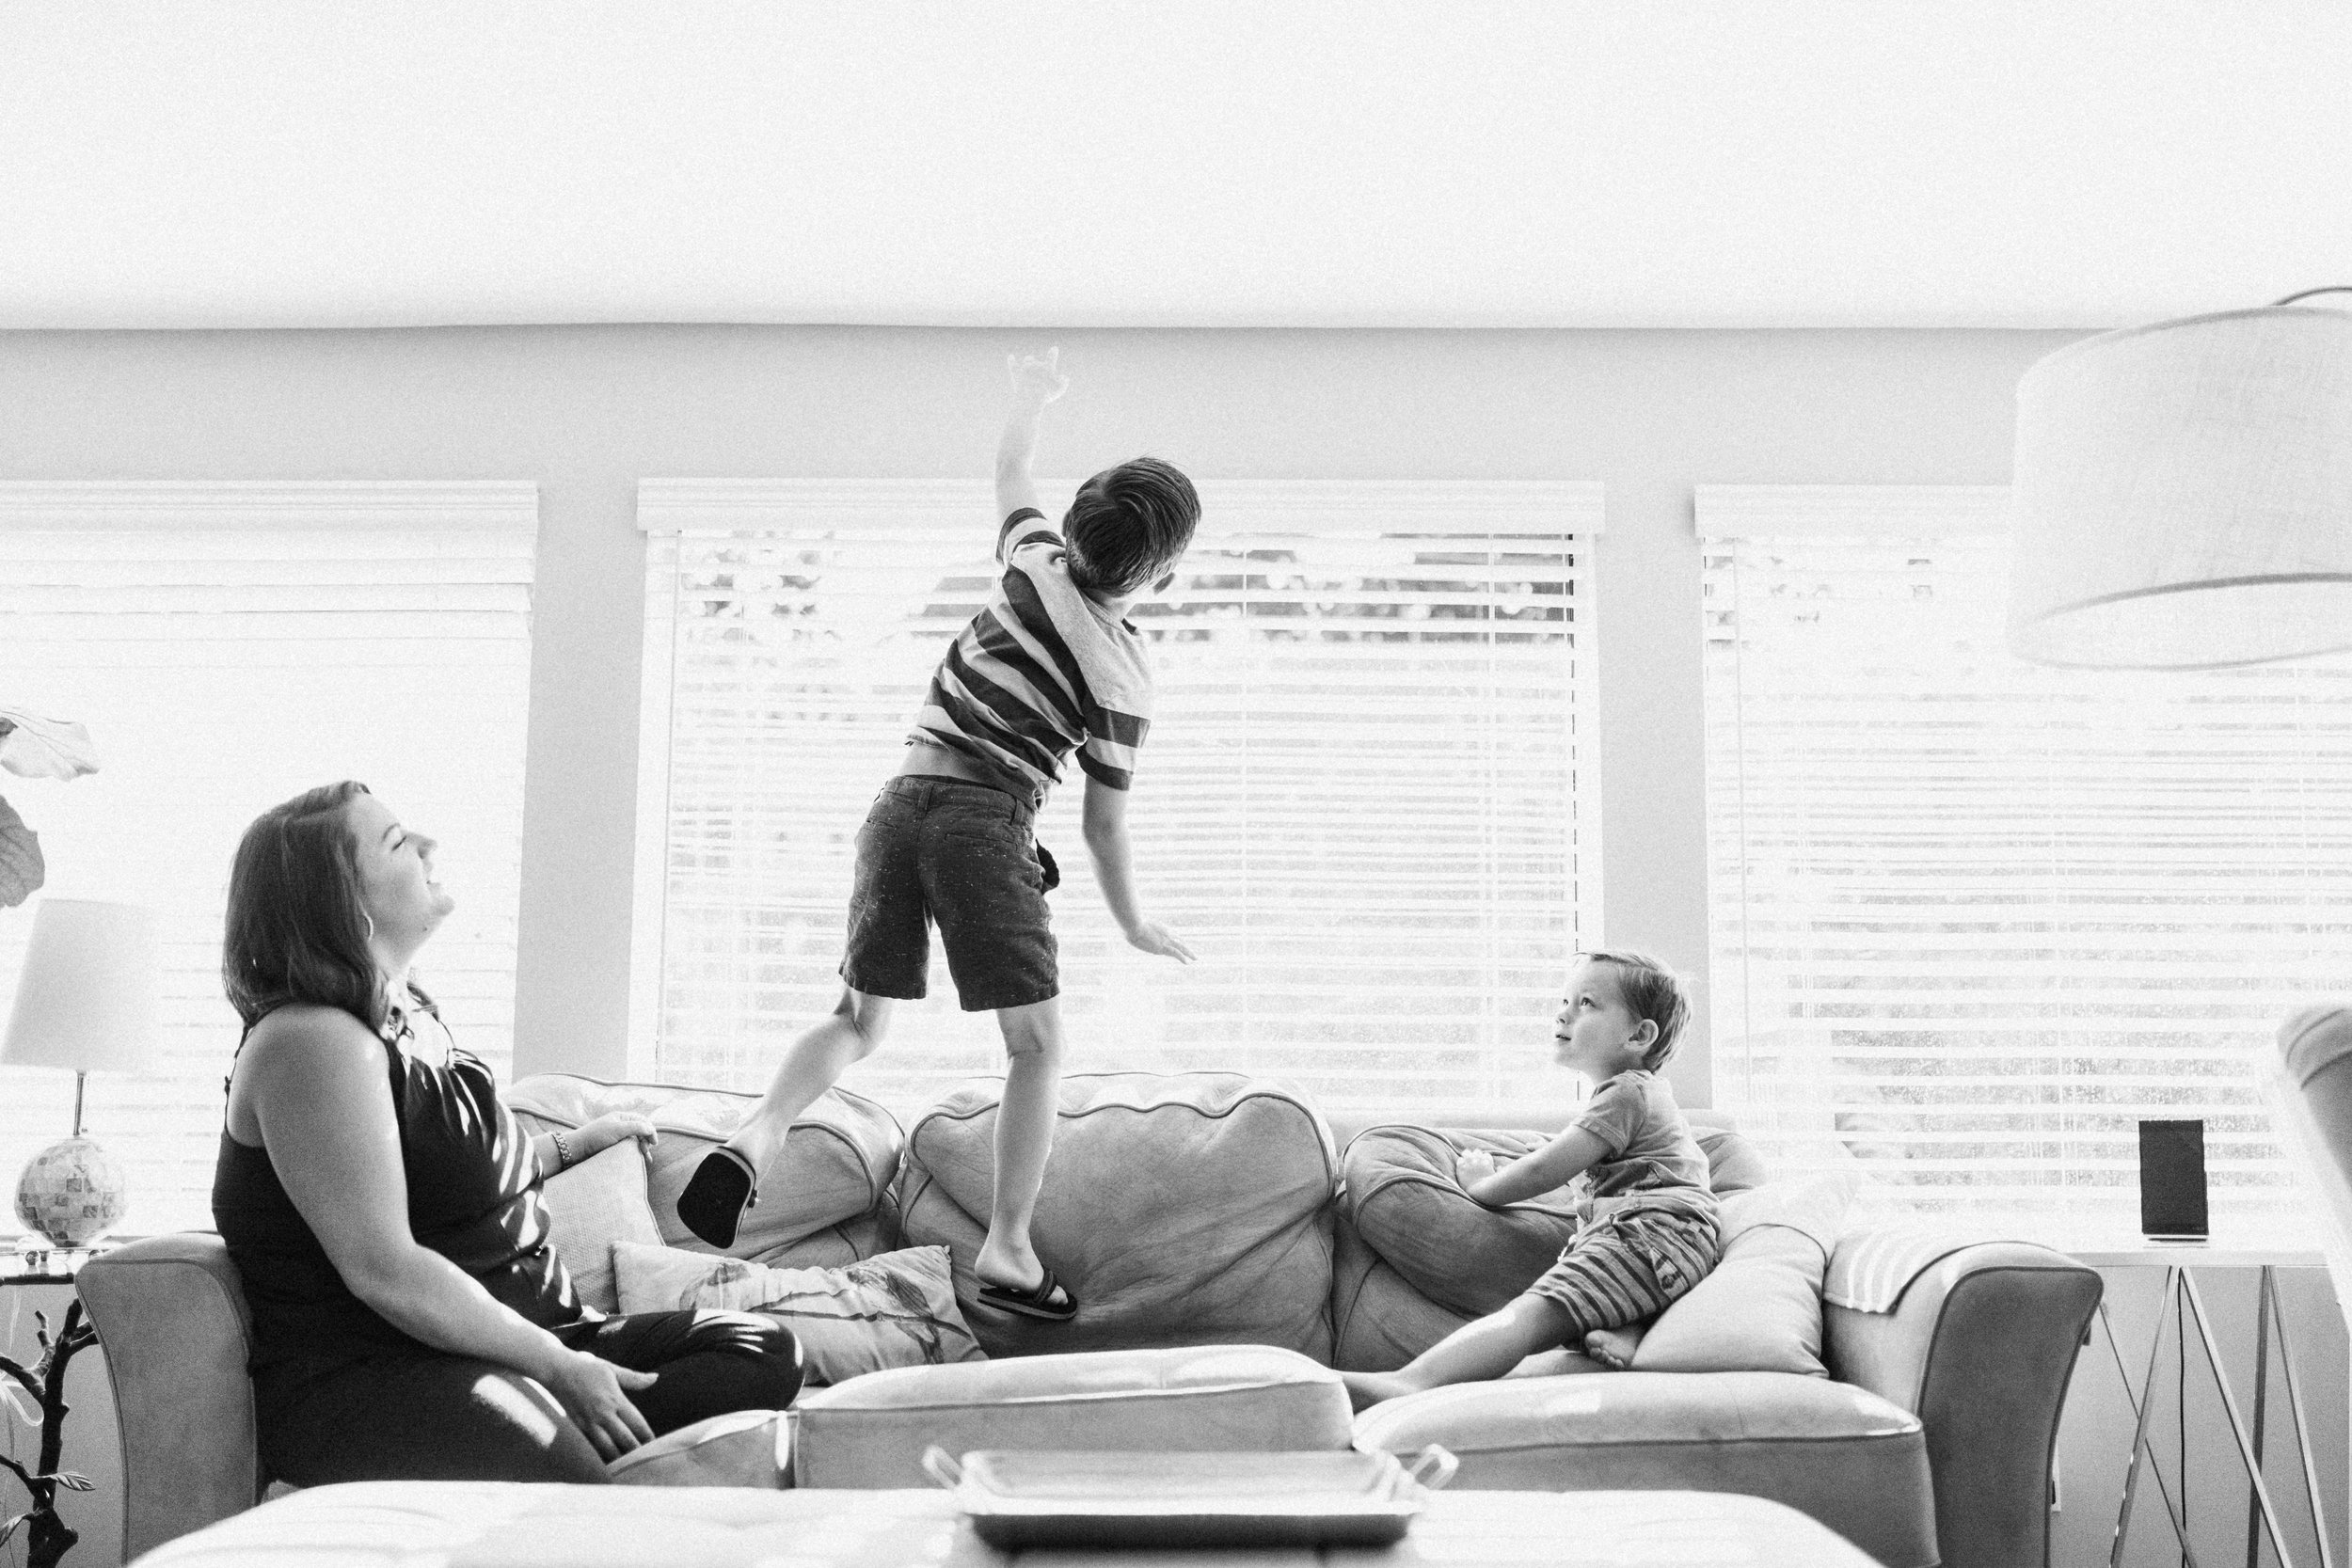 candid-black-and-white-photo-of-boys-playfully-jumping-on-couch-salt-lake-city-utah